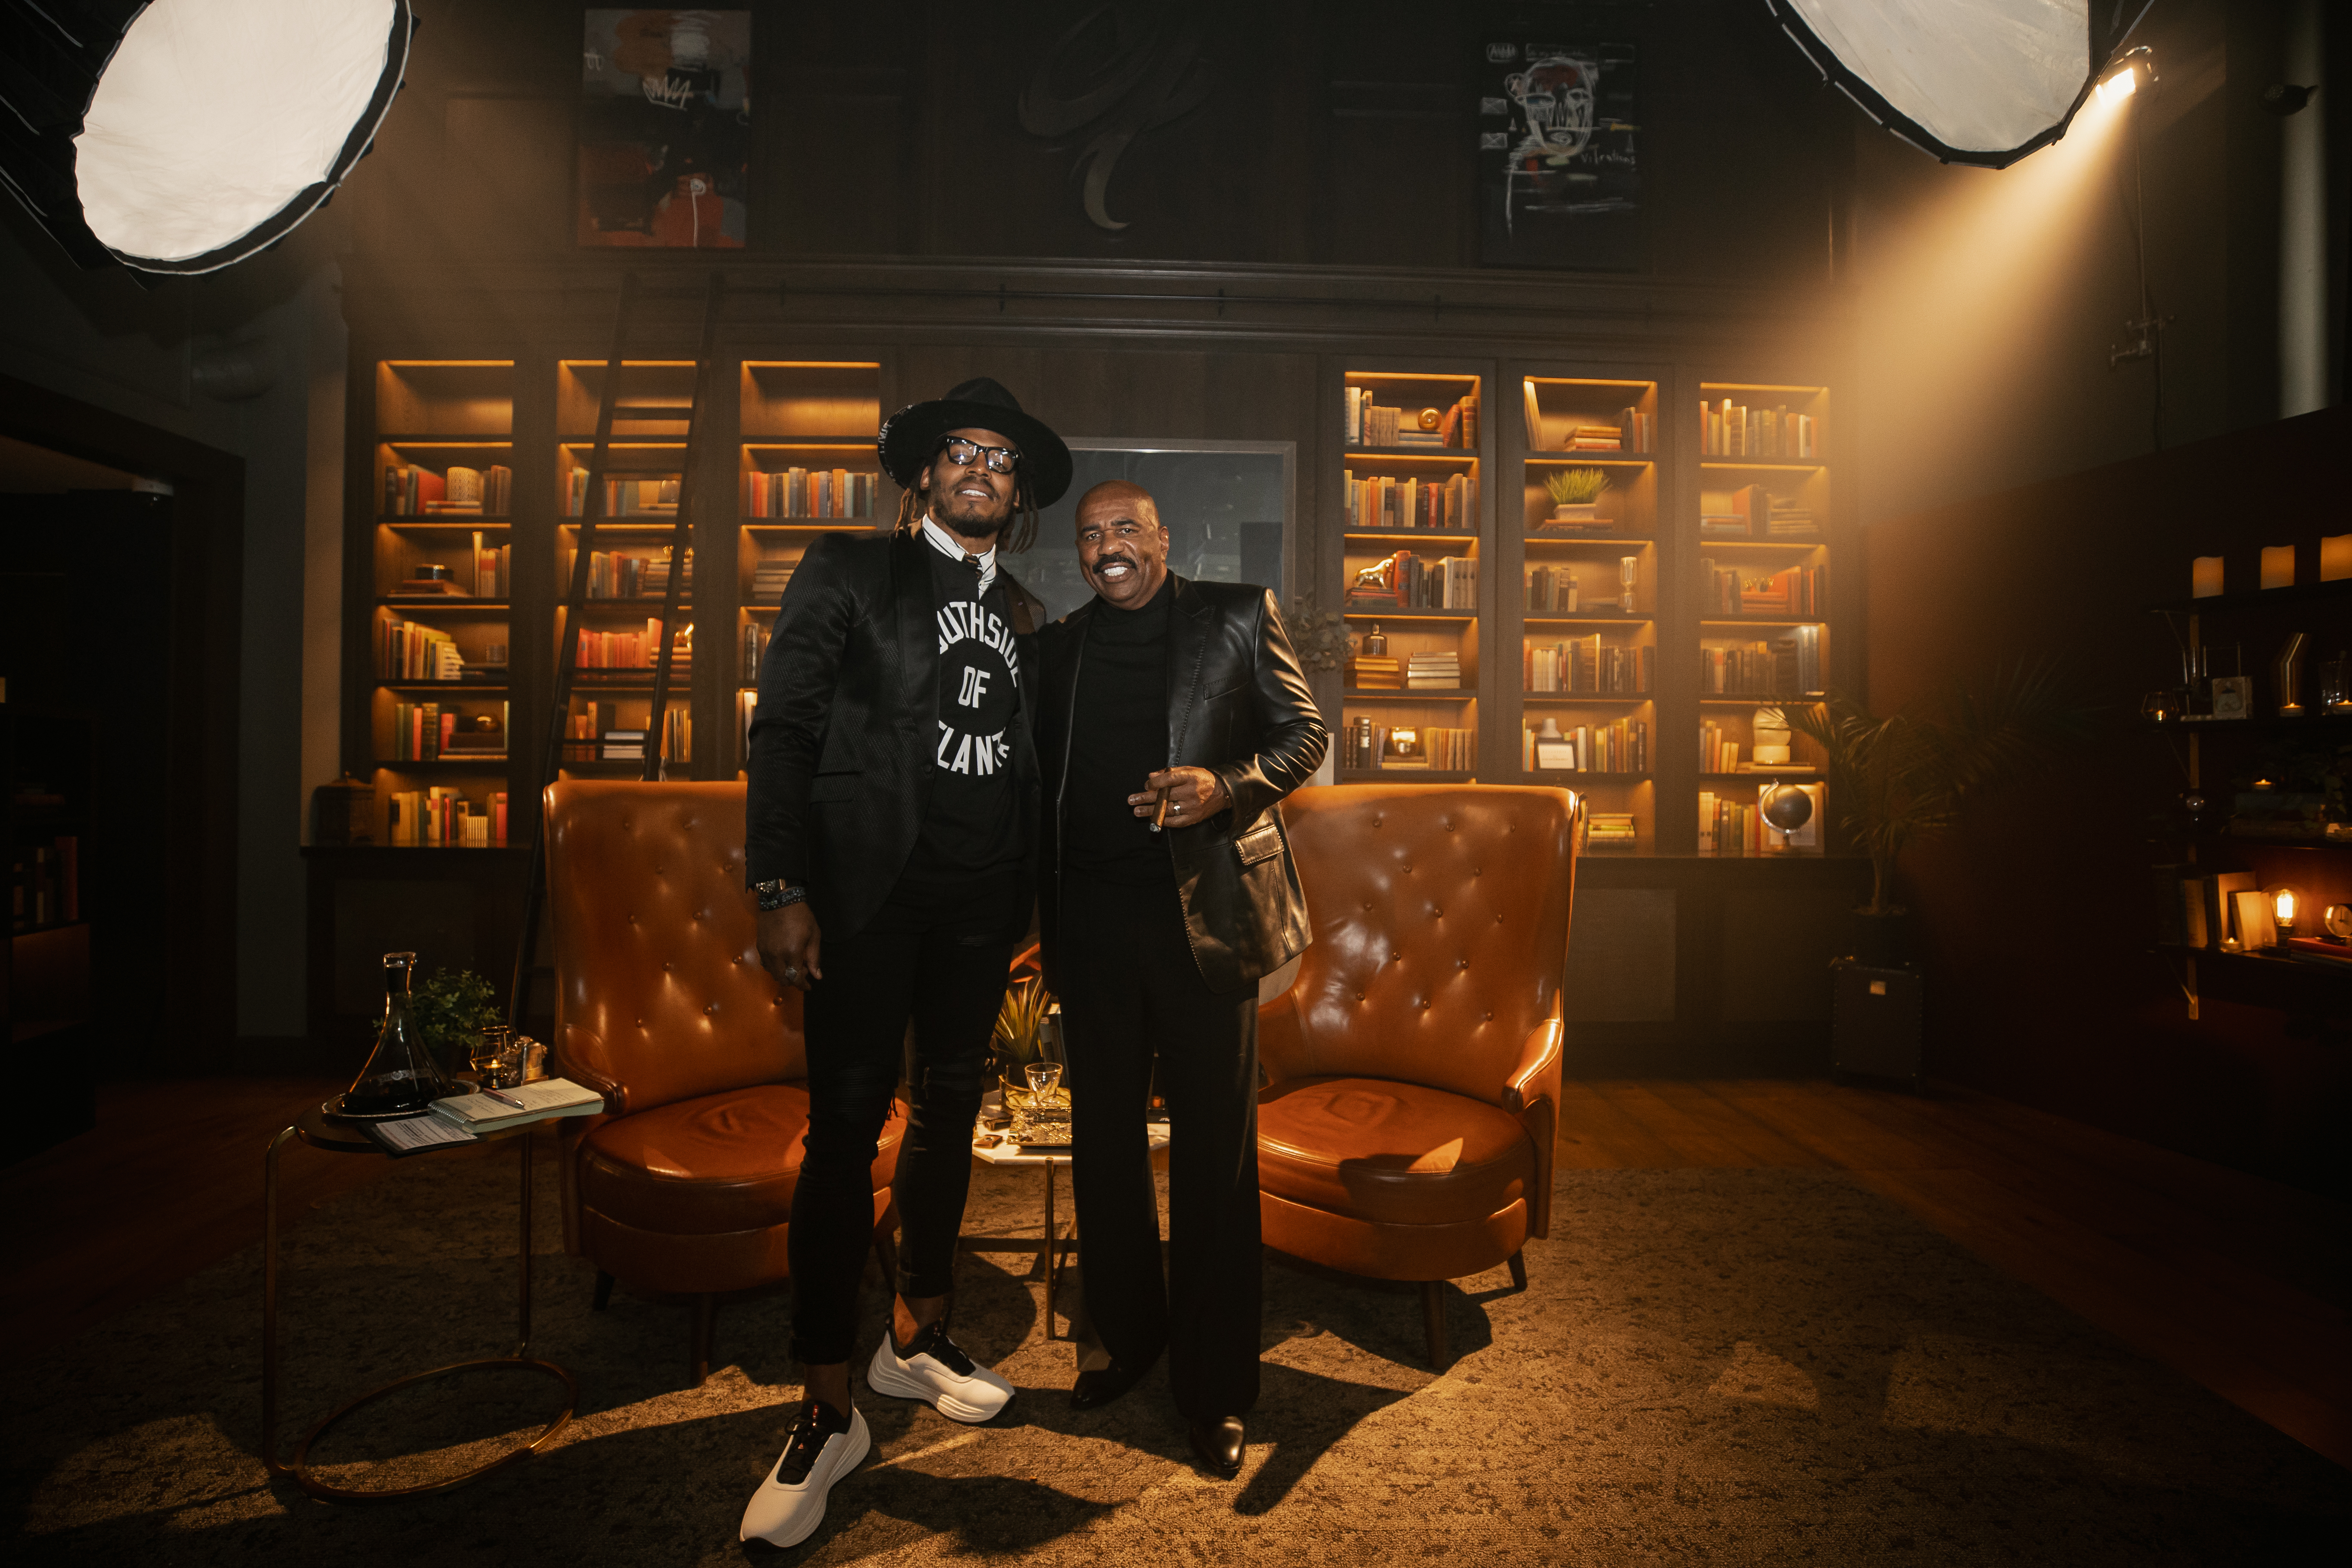 """Cam Newton Releases Episode 1 Of His New BET Show """"Smoke N' Sip"""" With Guest Steve Harvey [Video]"""